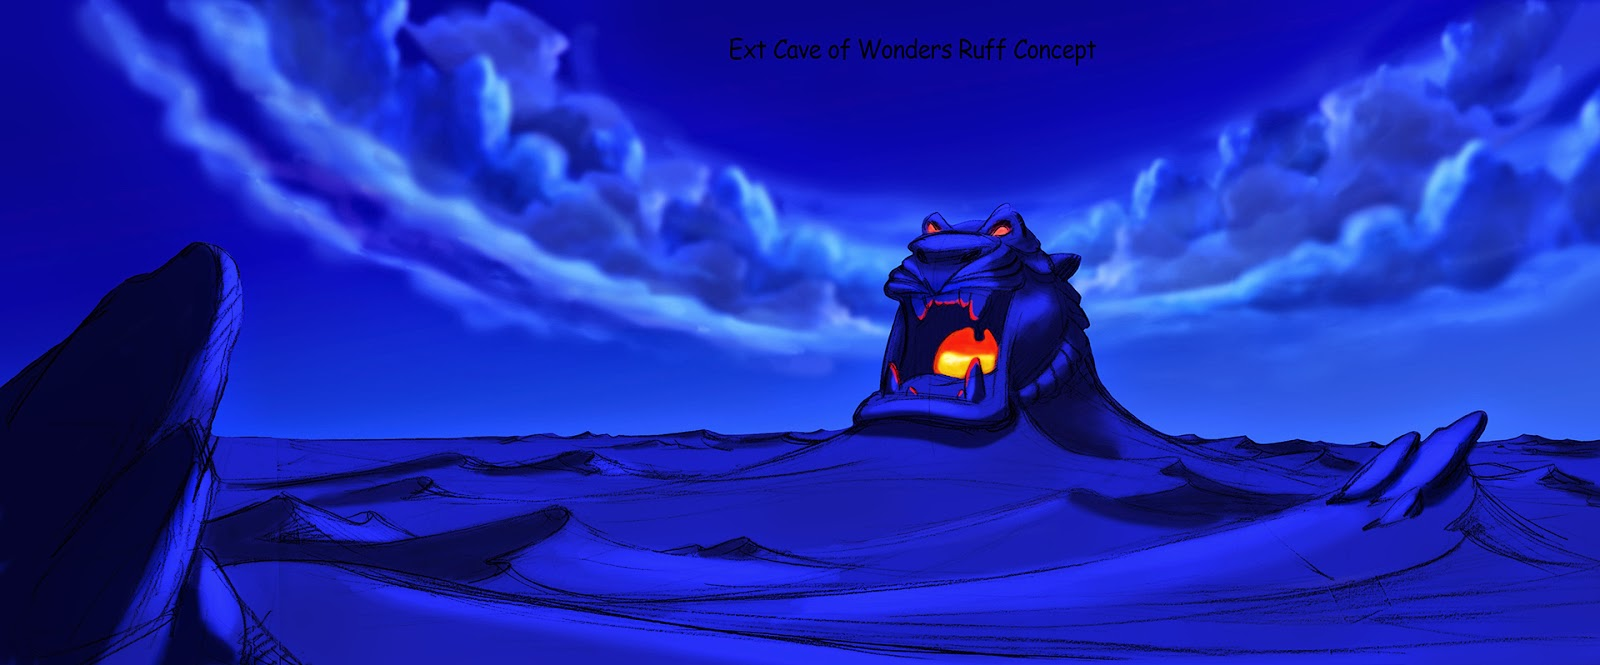 21 - Aladdin (Cancelled Kingdom Hearts game concept art) - Kingdom Hearts Gallery ...